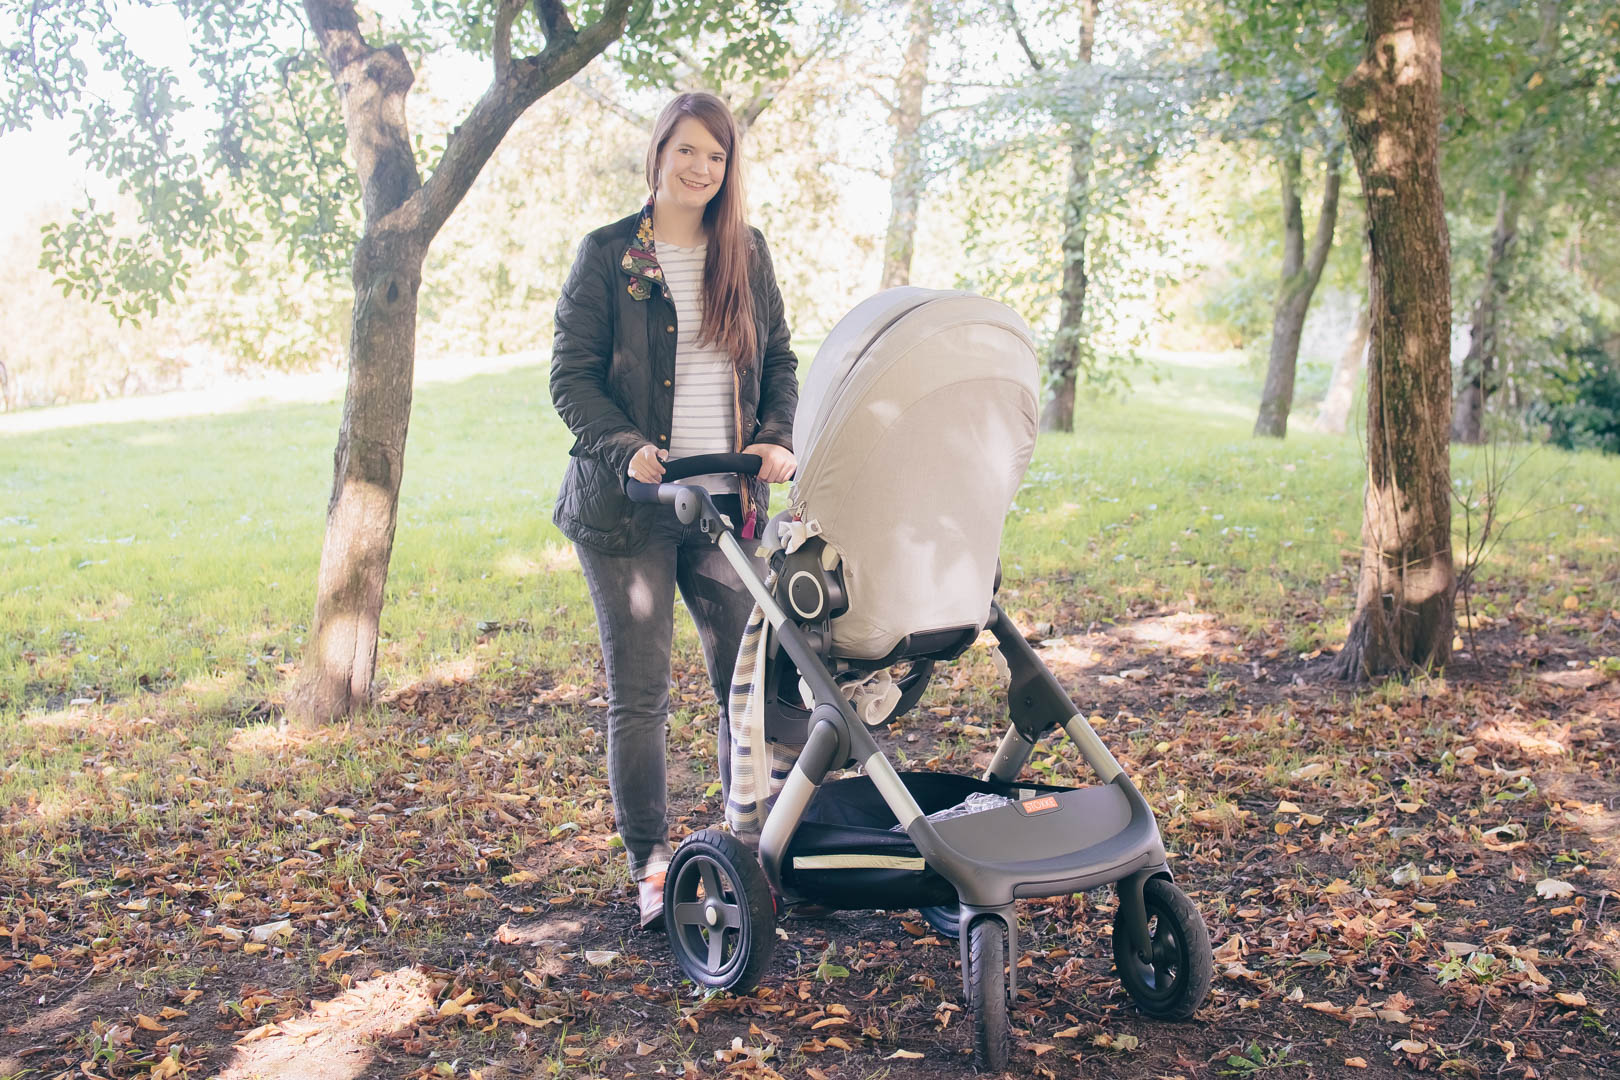 stokke_trails_review_07